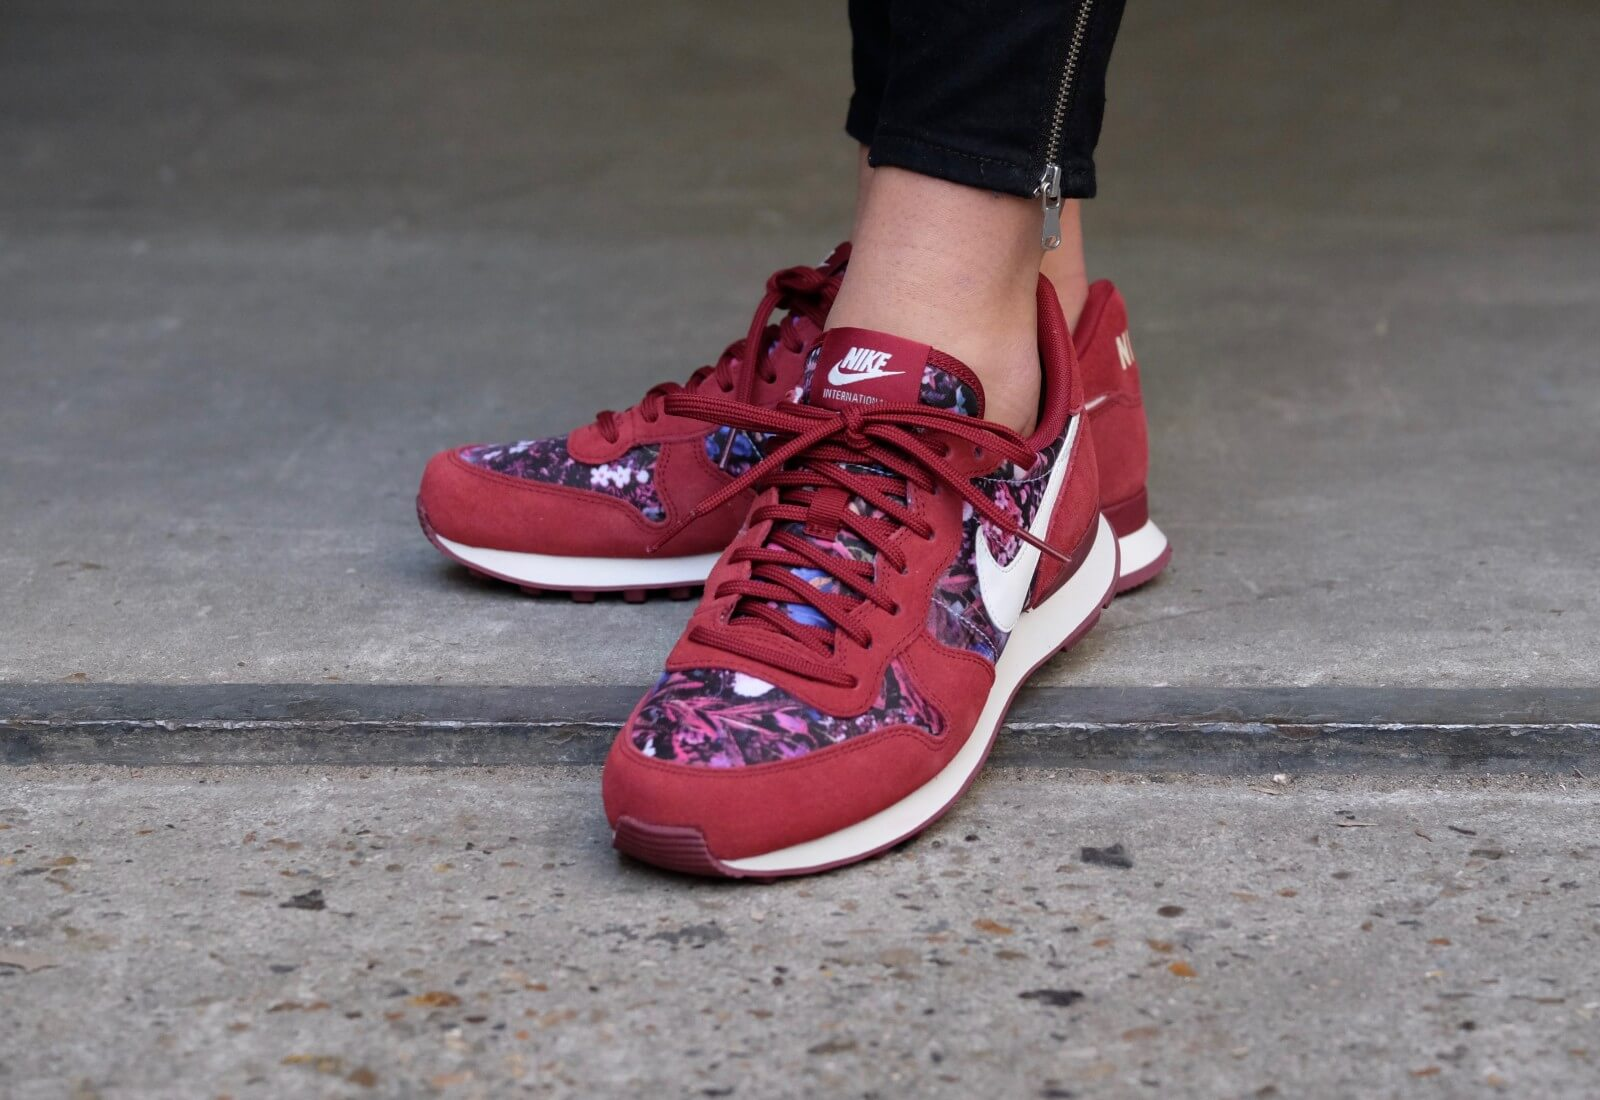 hot sale online a9dcc fa53f ... Nike WMNS Internationalist PRM Team RedSail-Team Red - 82840 ...